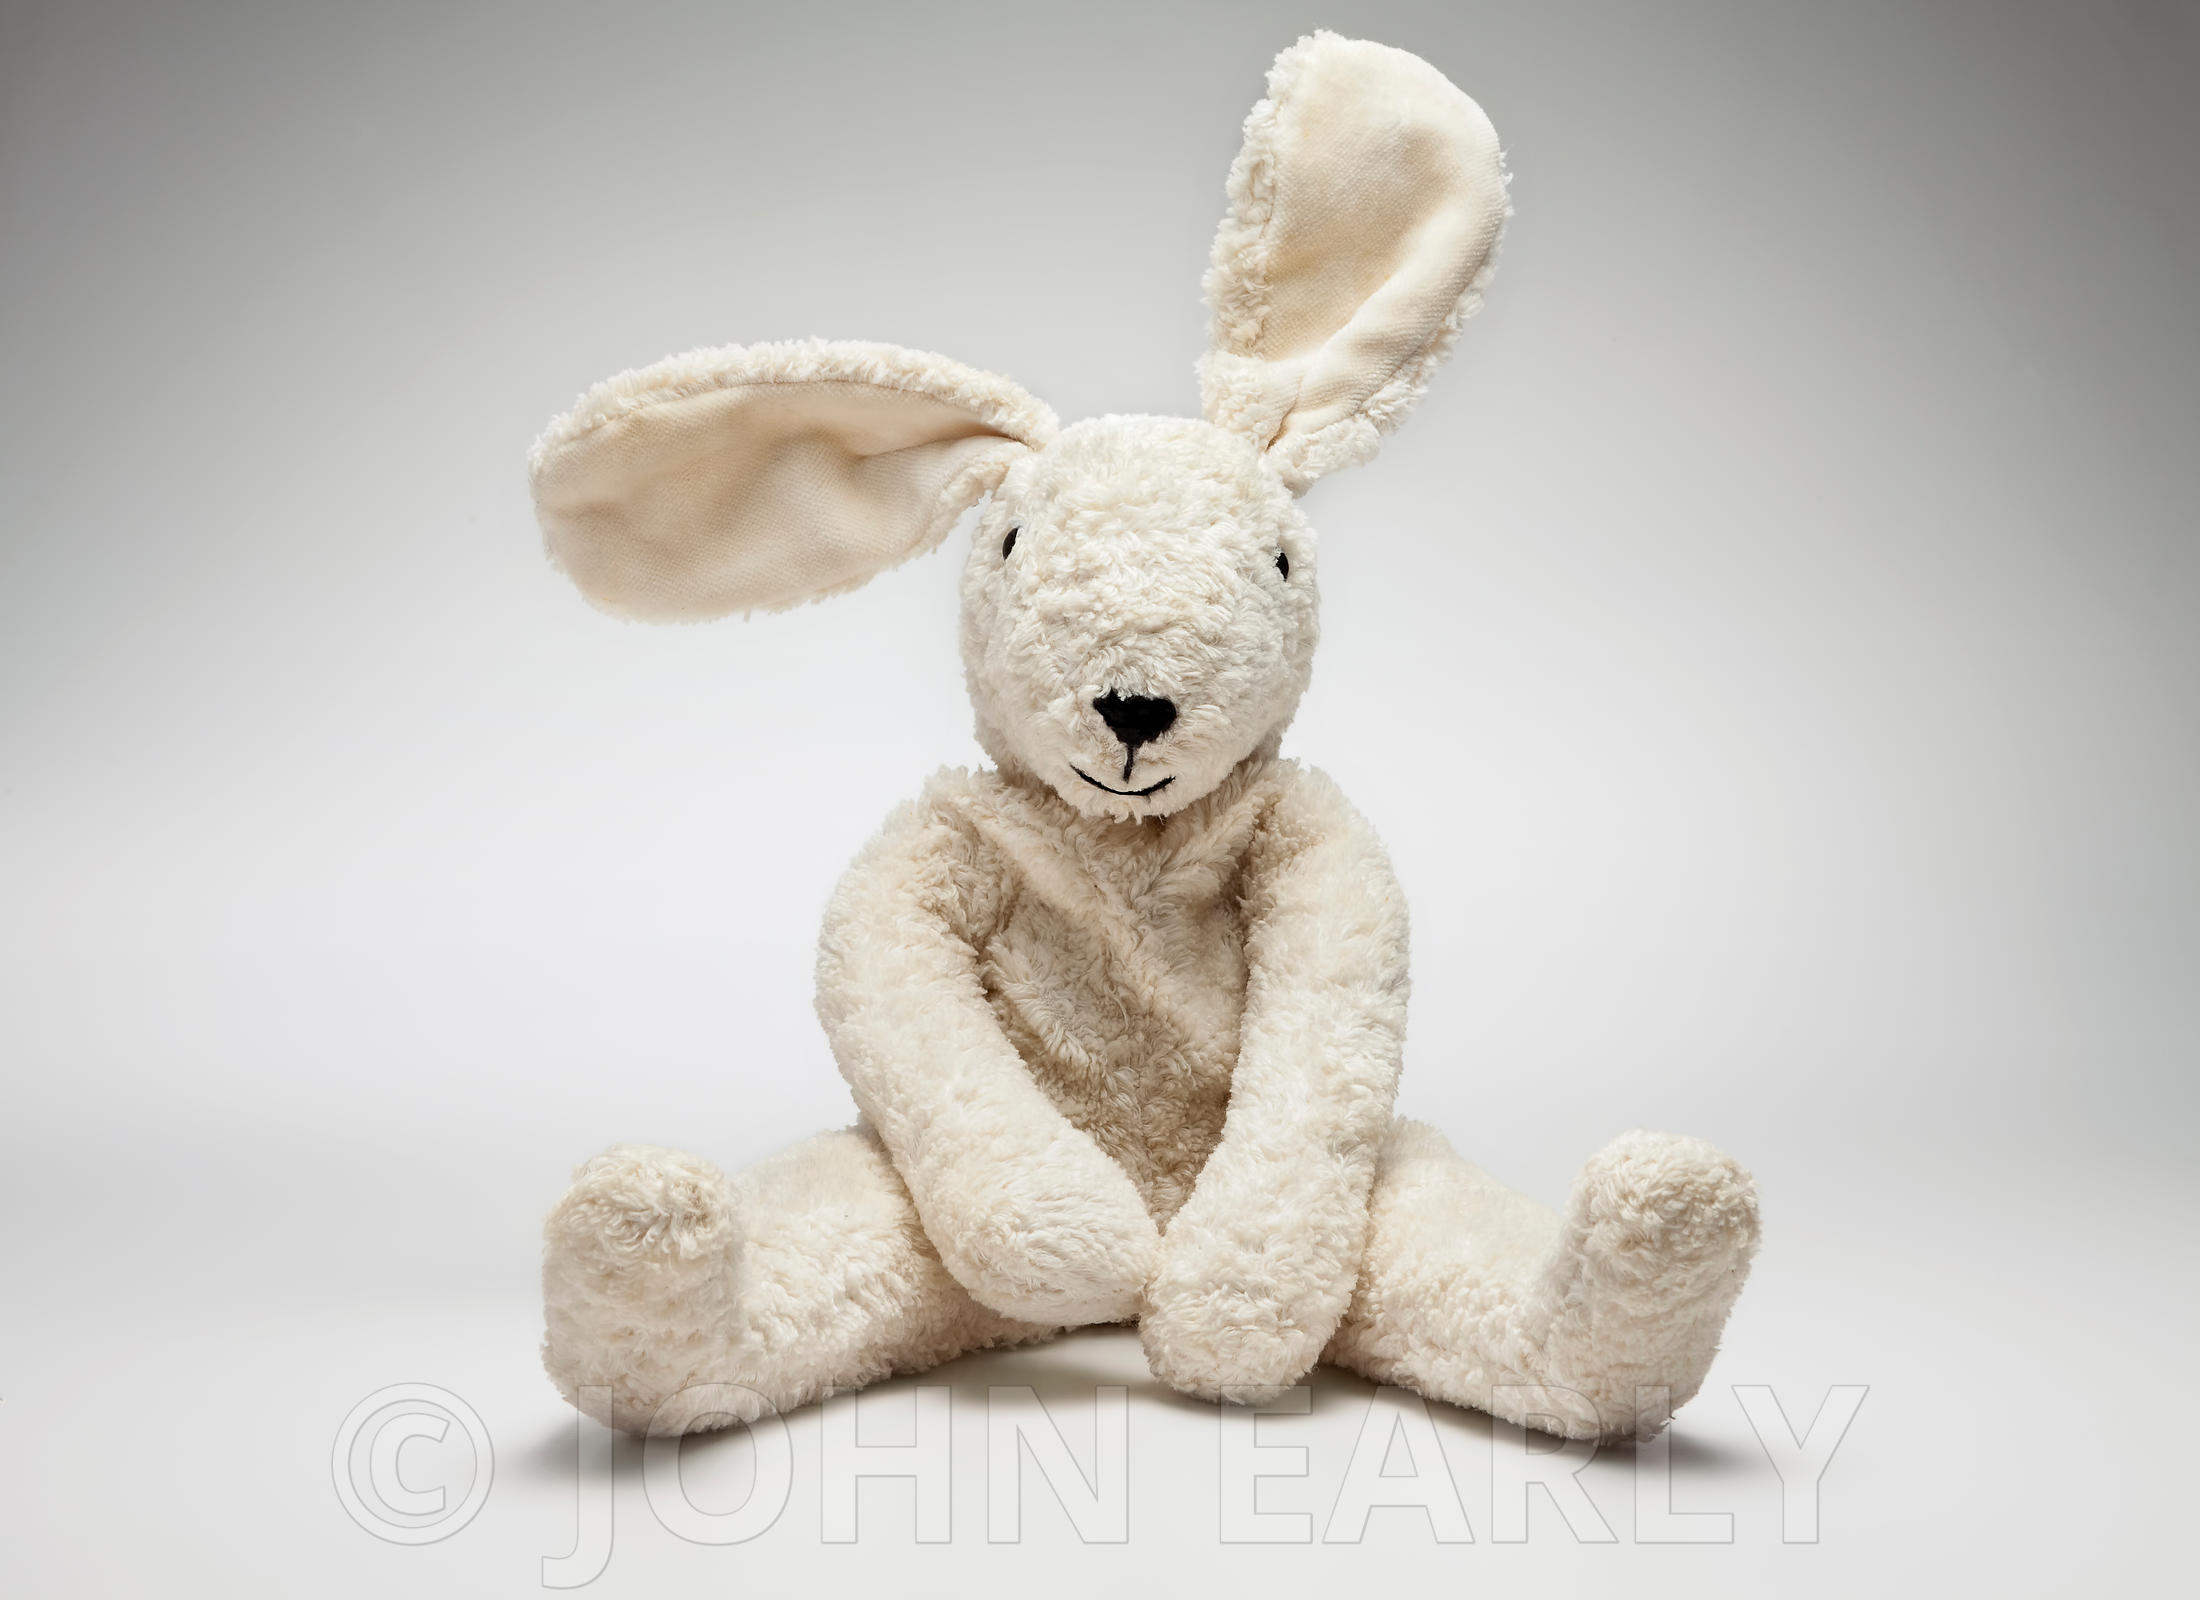 Stuffed Toy (Bunny Rabbit) On White Pose #5